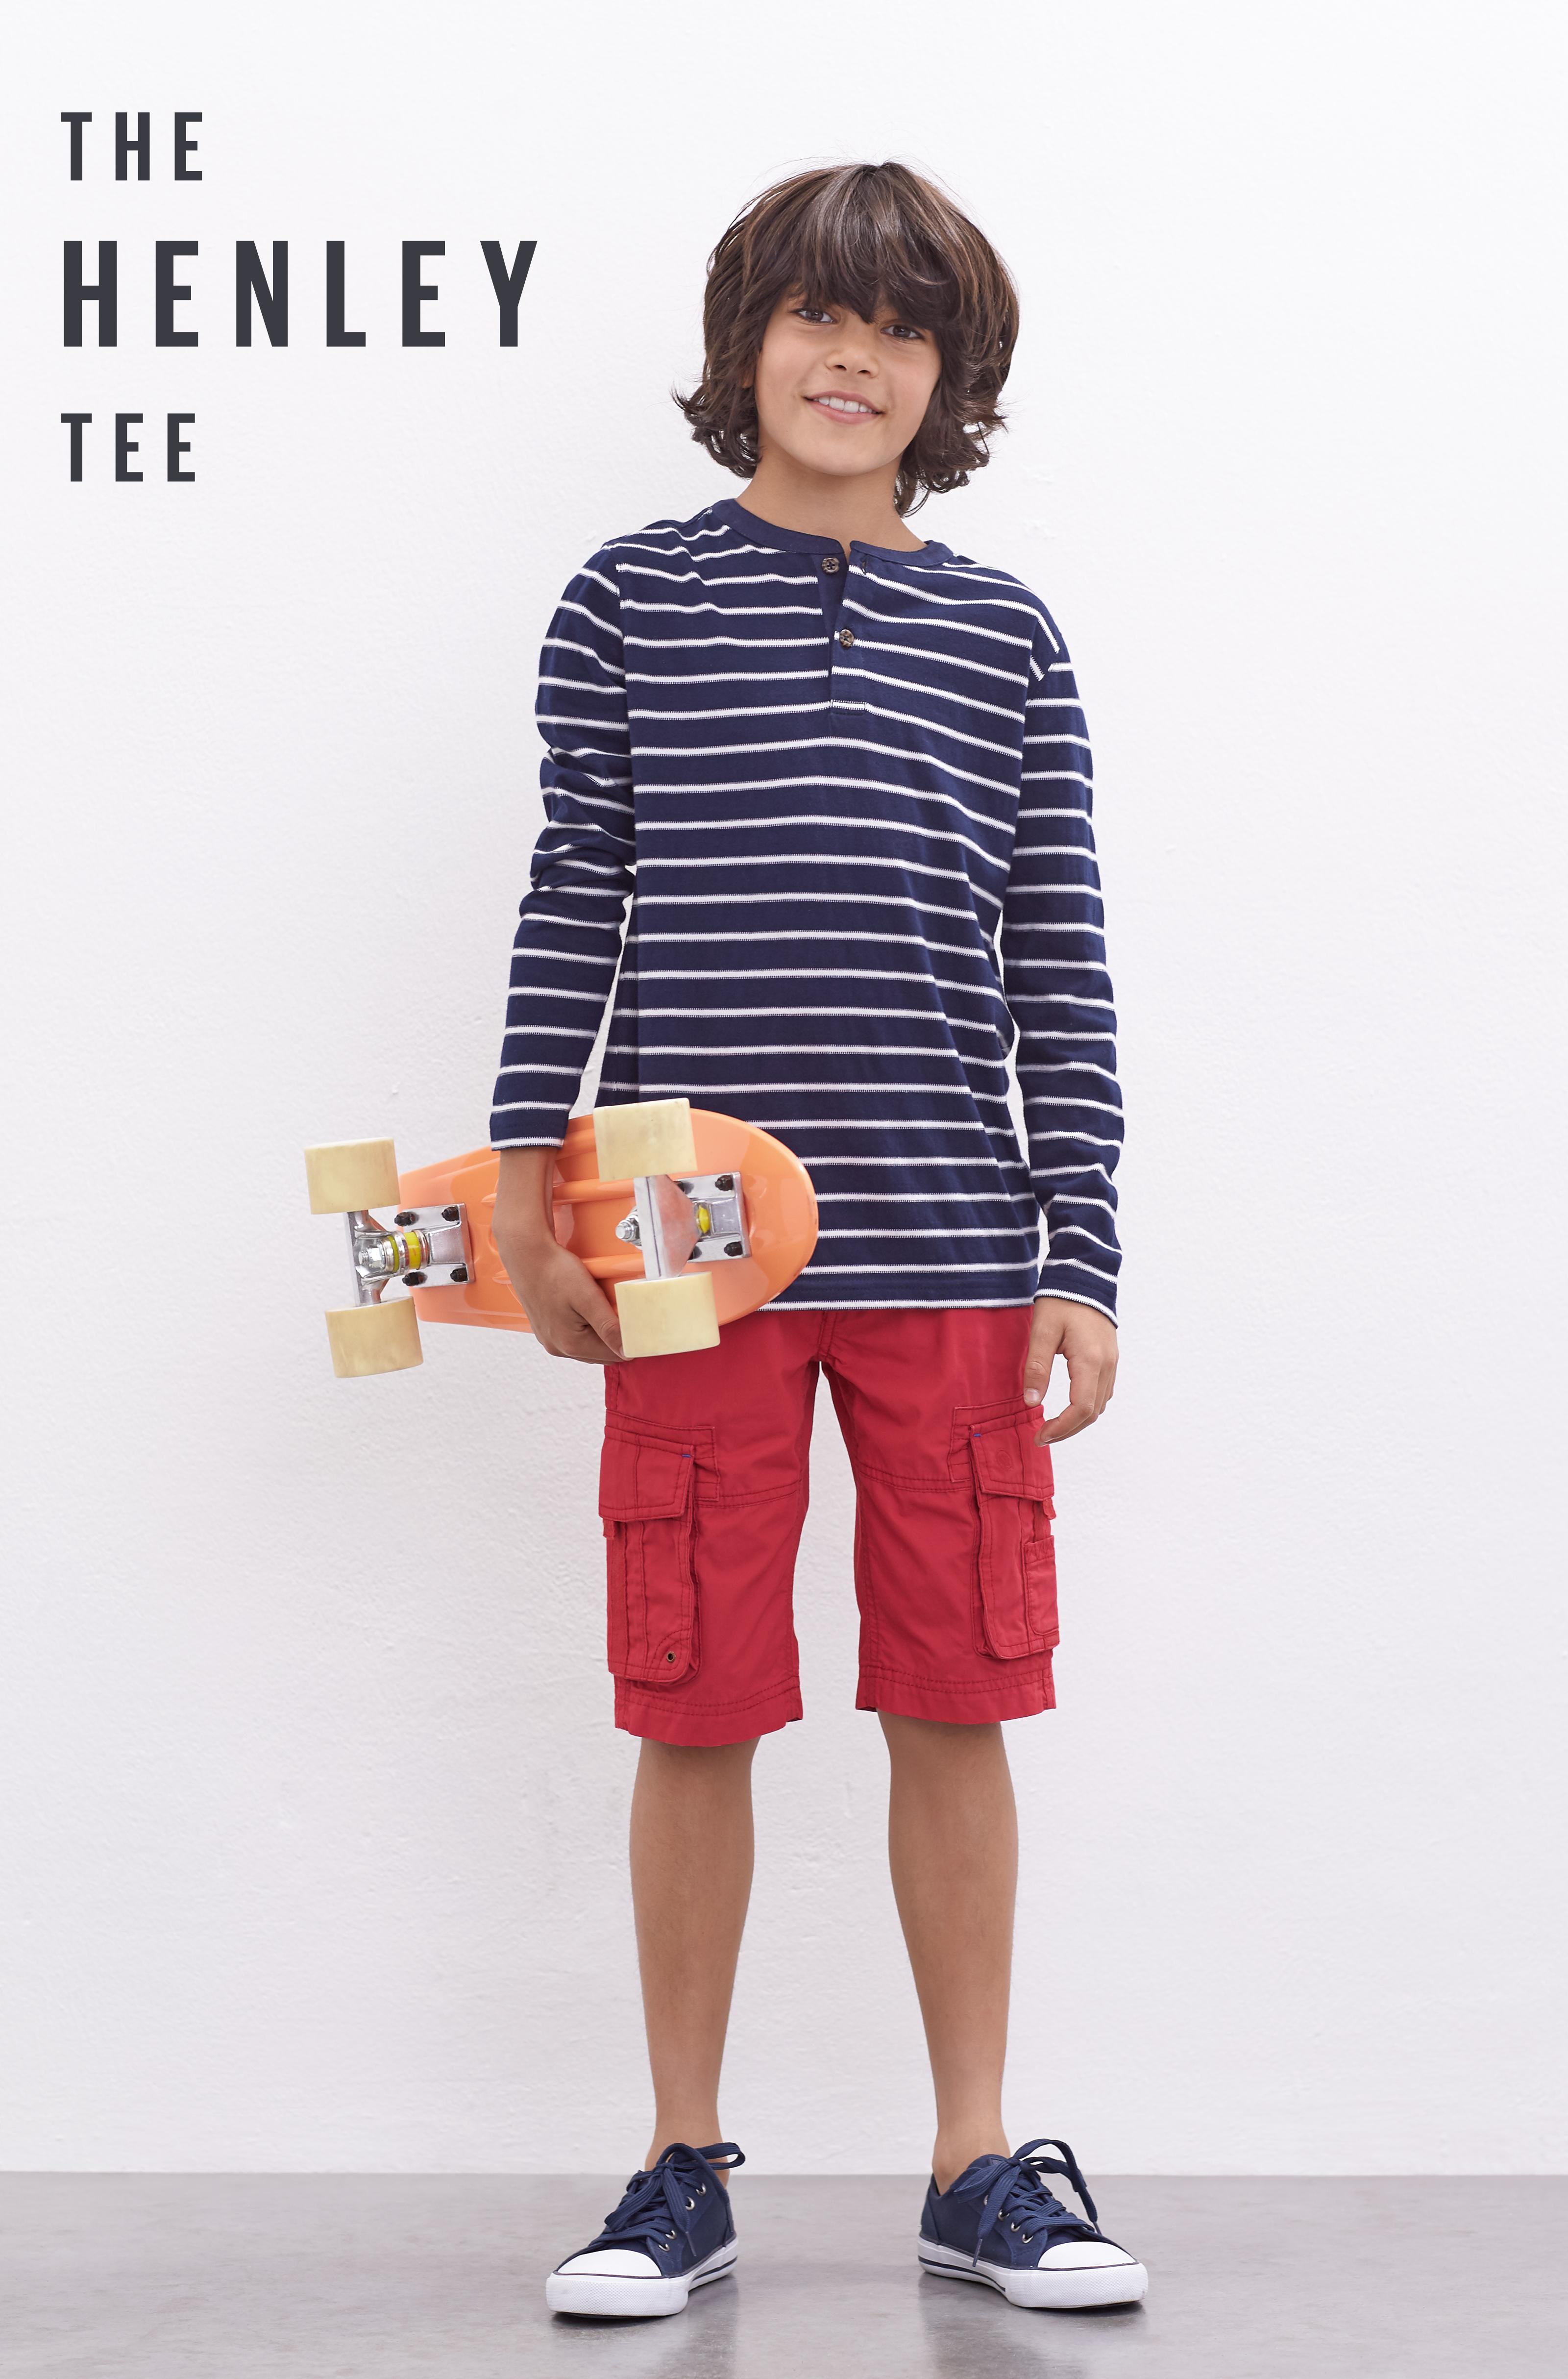 Boy model wearing a dark blue stripe button up top with red cargo shorts, holding a skateboard.